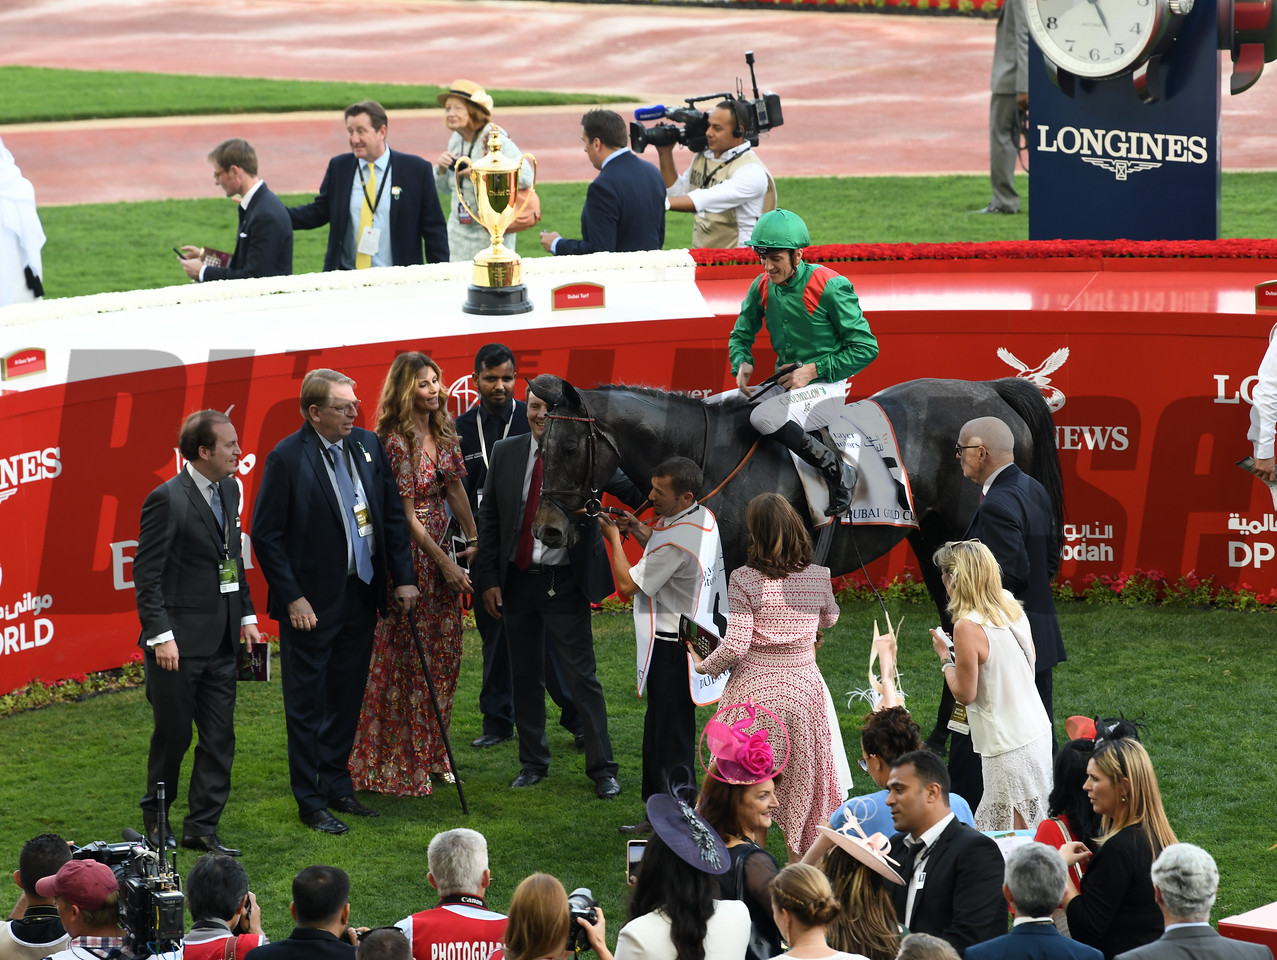 Vaziribad, Christophe Soumillon win the Dubai Gold Cup,  DWC 2018, Meydan Race Course, Dubai, UAE, 3-31-18, photo by Mathea Kelley/Dubai Racing Club